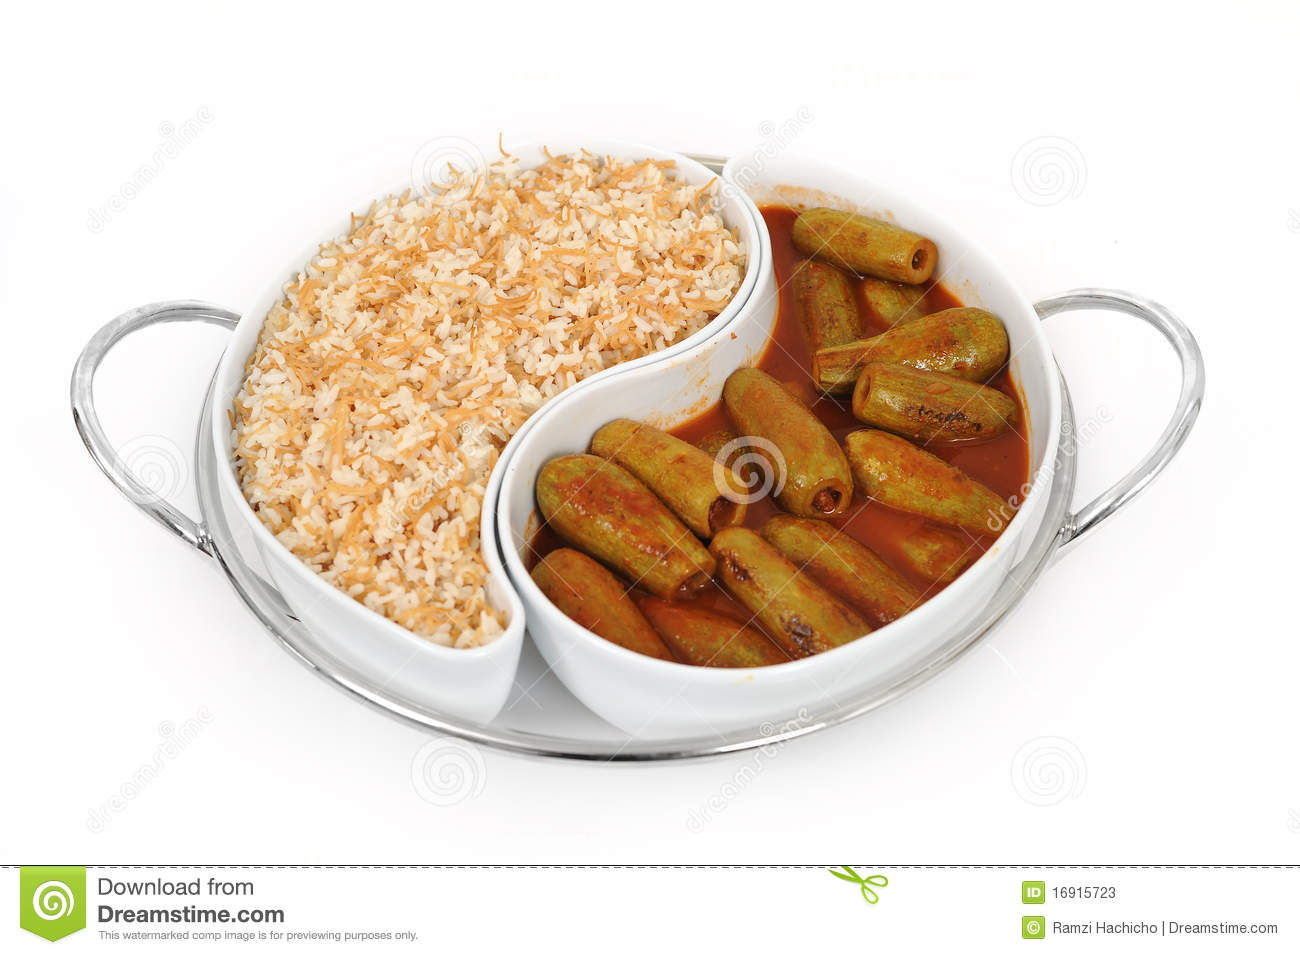 Lebanese food of stuffed zucchini and rice stock image for Arabic cuisine food